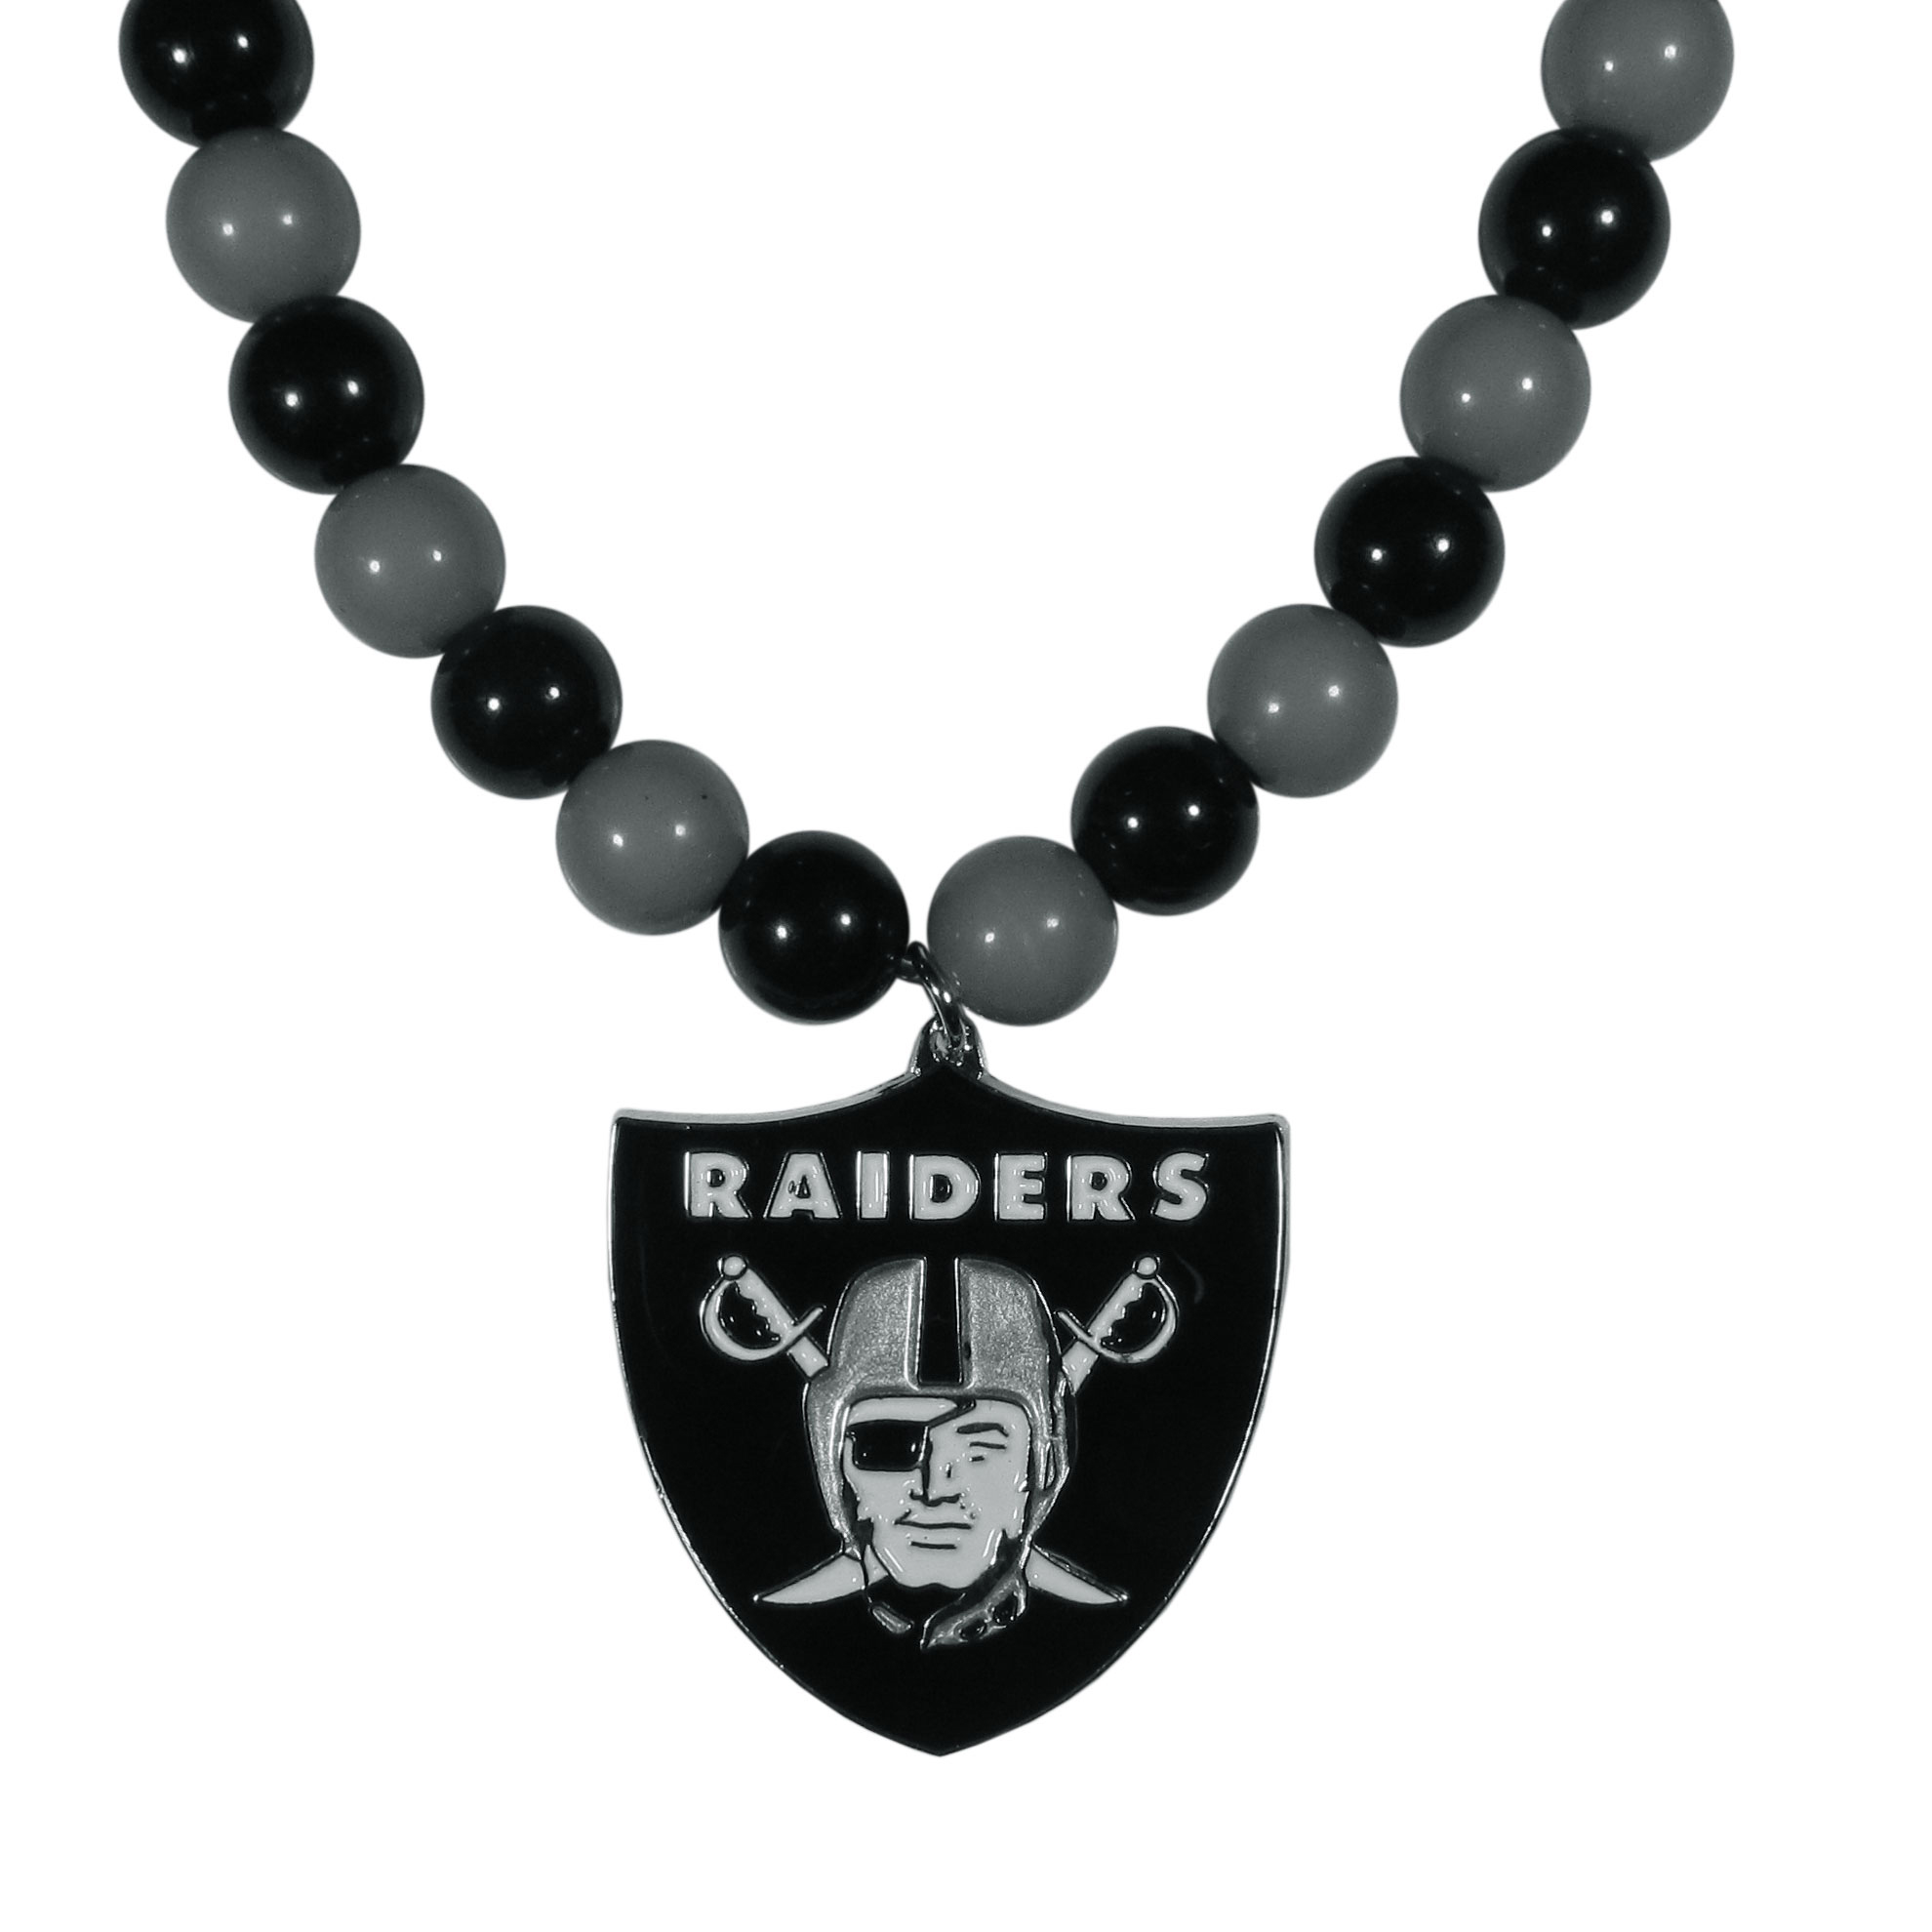 Oakland Raiders Fan Bead Necklace - Make a big statement with our fan bead necklaces! These brightly colored necklace have a 24 inch string of alternating colored beads with an extra large, high-polish Oakland Raiders pendant.